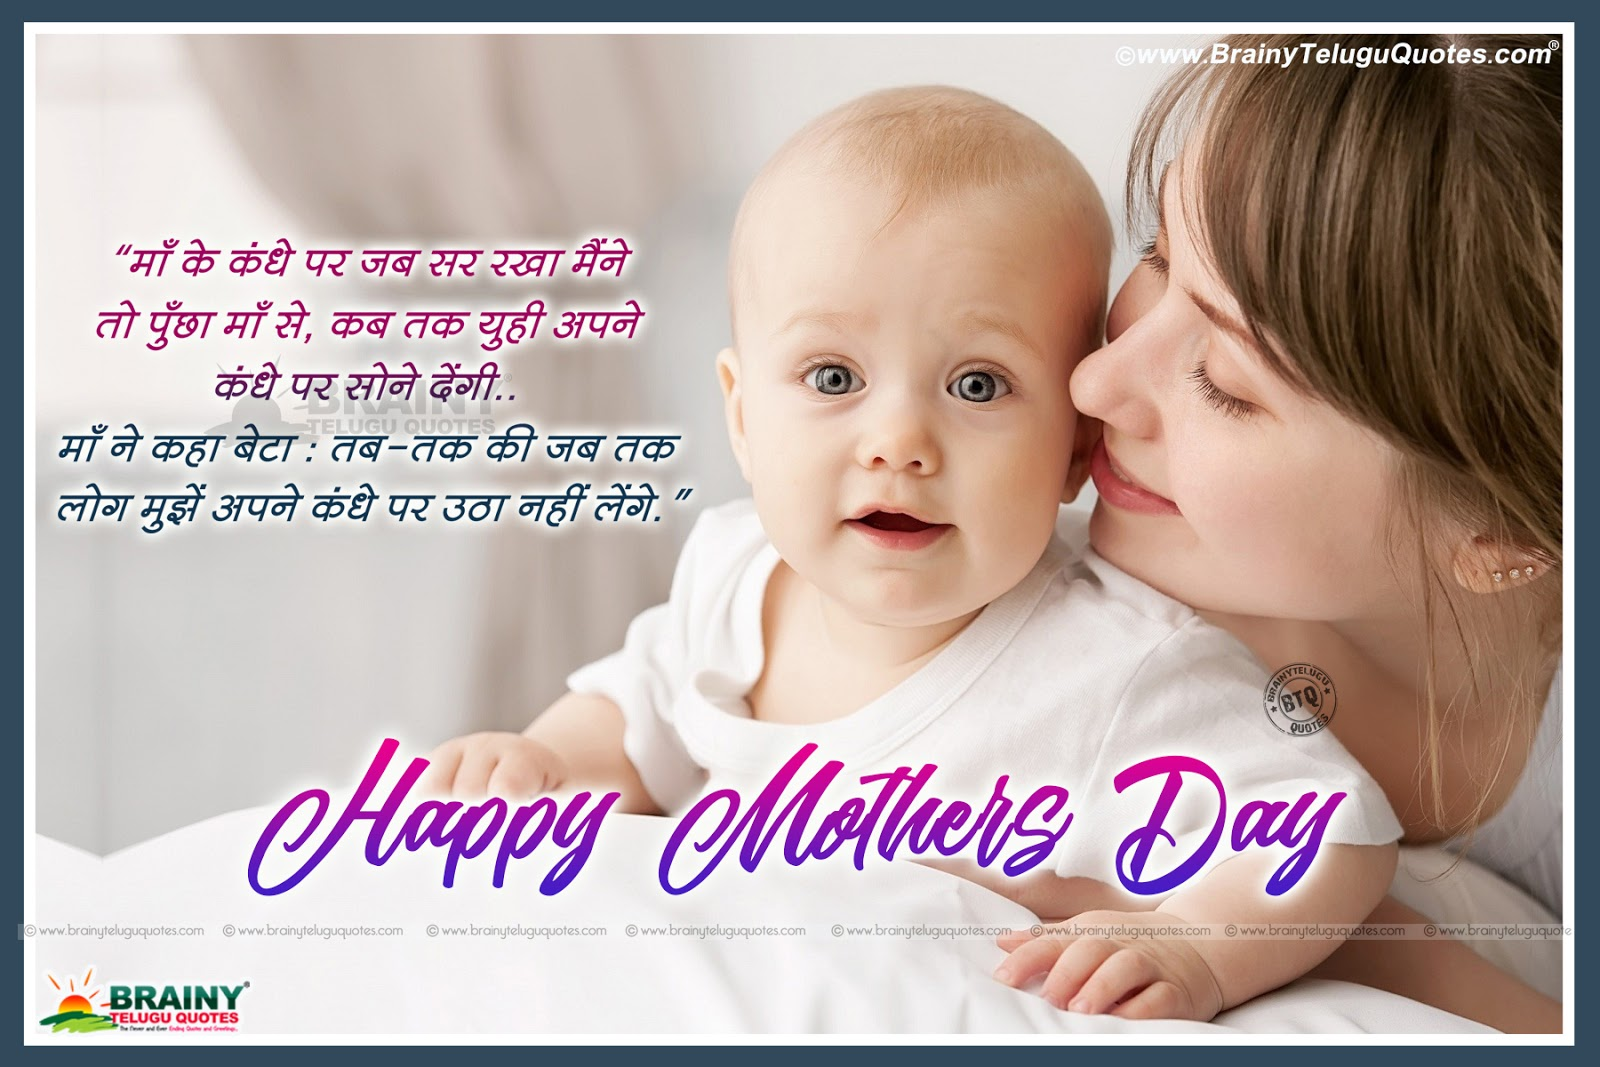 Quotes For Mothers Day In Tamil 1600x1067 Download Hd Wallpaper Wallpapertip